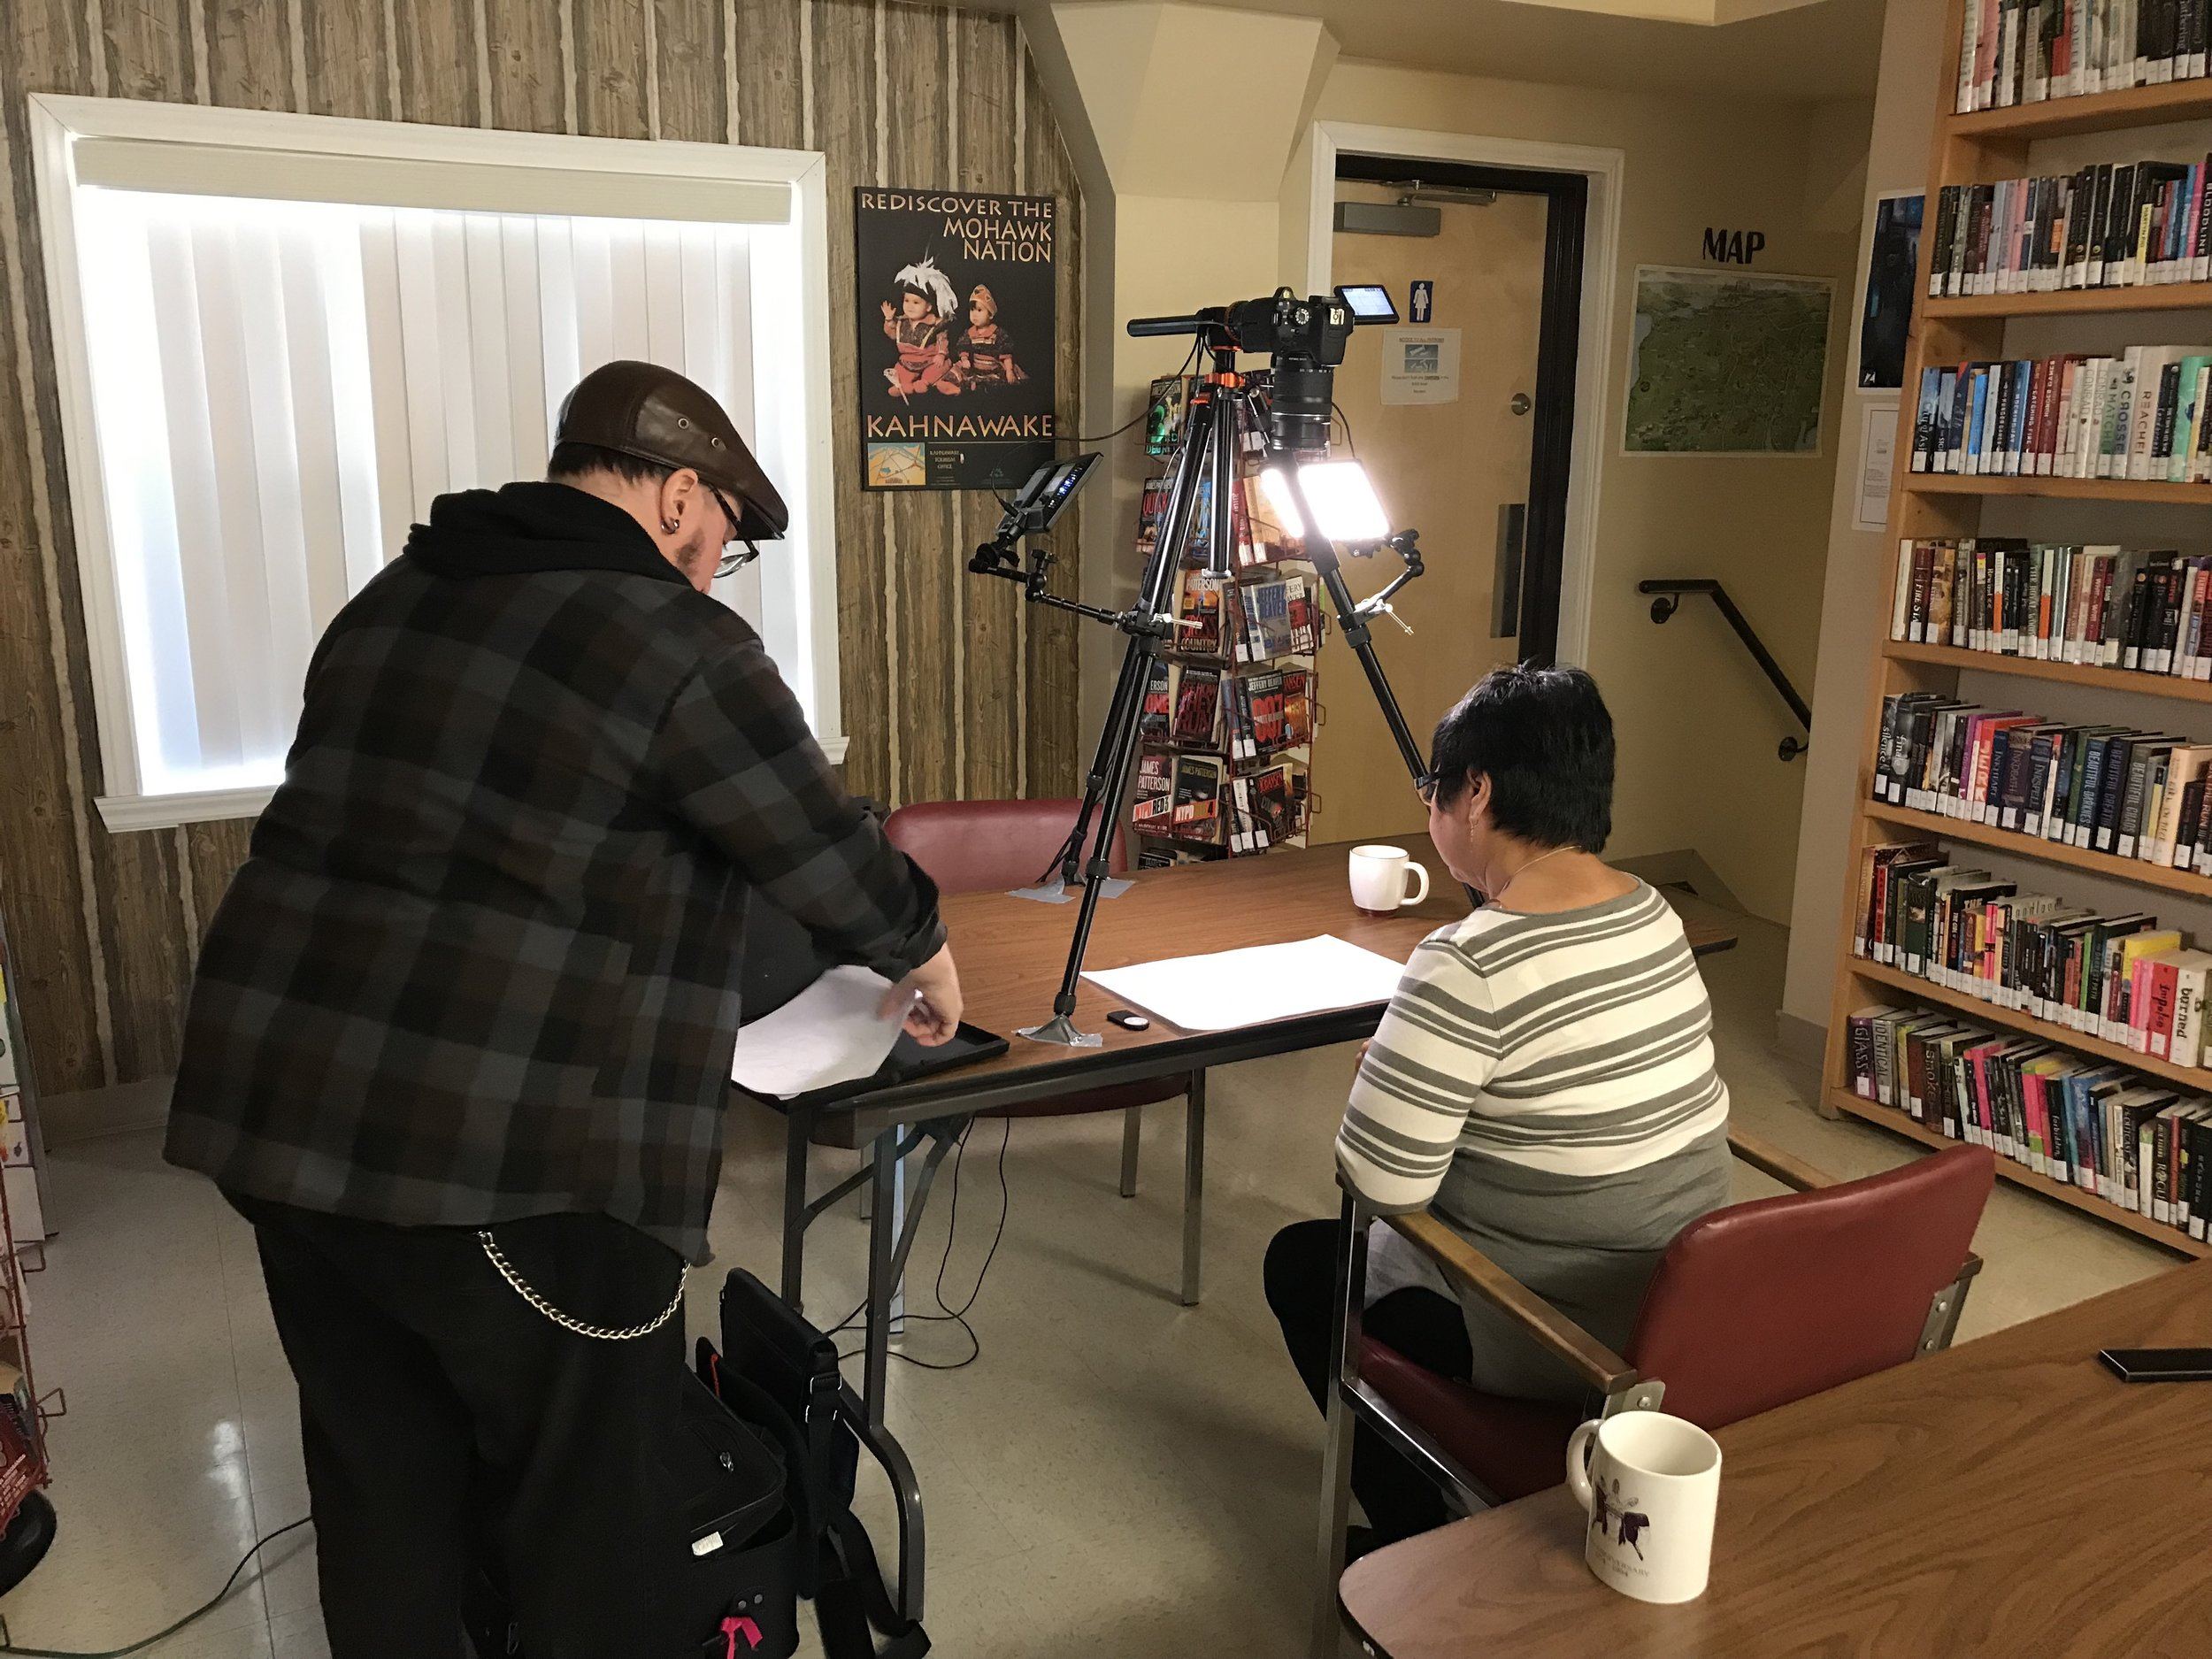 Glenn and Marlene get ready to animate